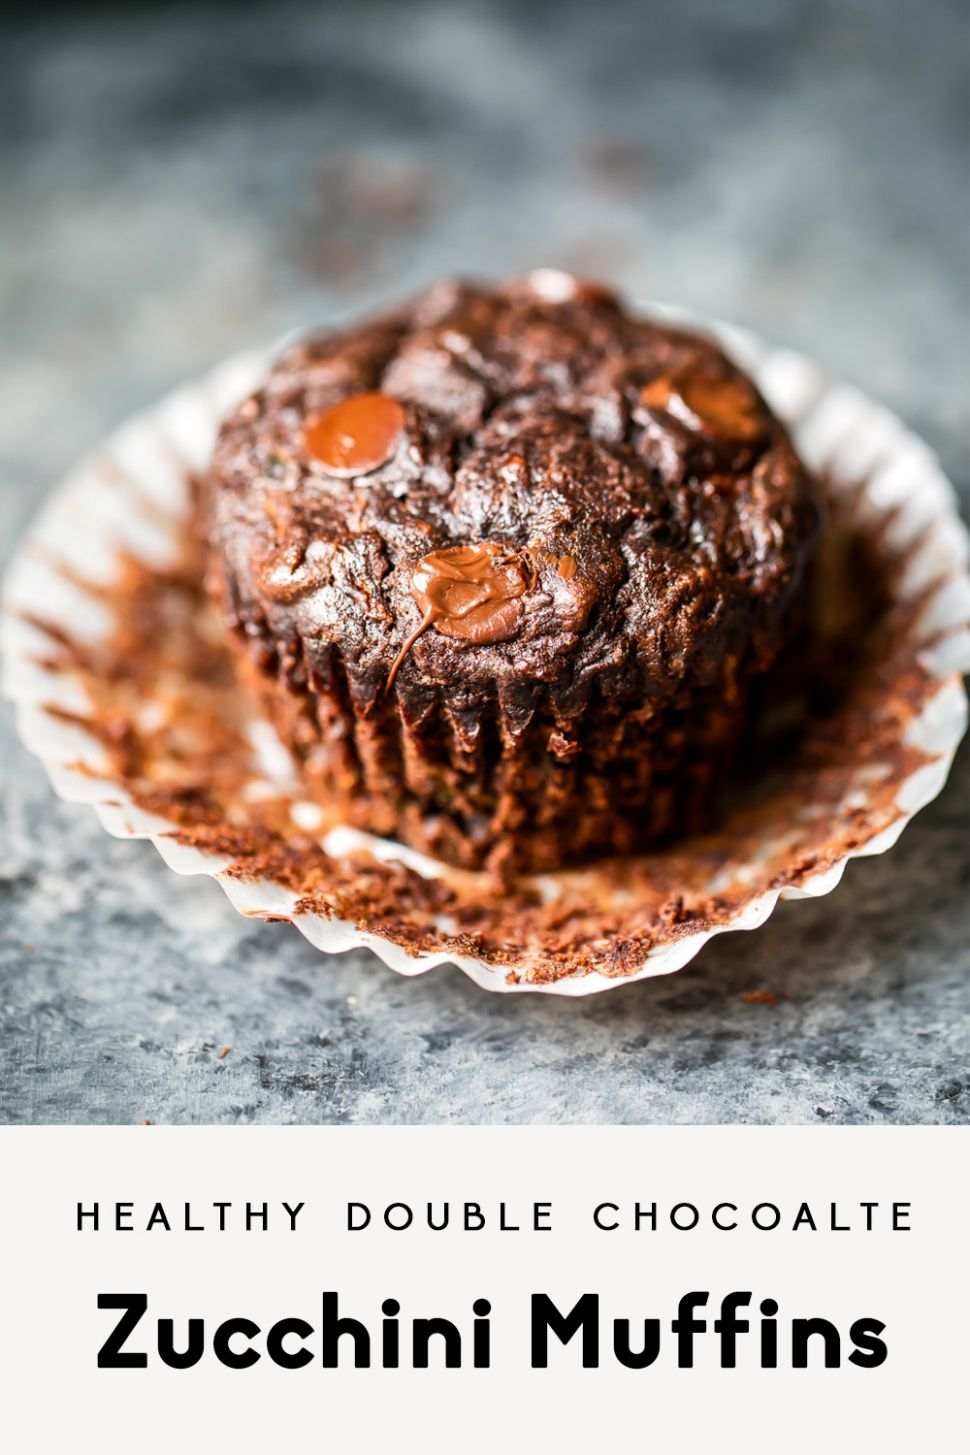 Healthy Double Chocolate Zucchini Muffins | Ambitious Kitchen - Recipes Chocolate Zucchini Muffins